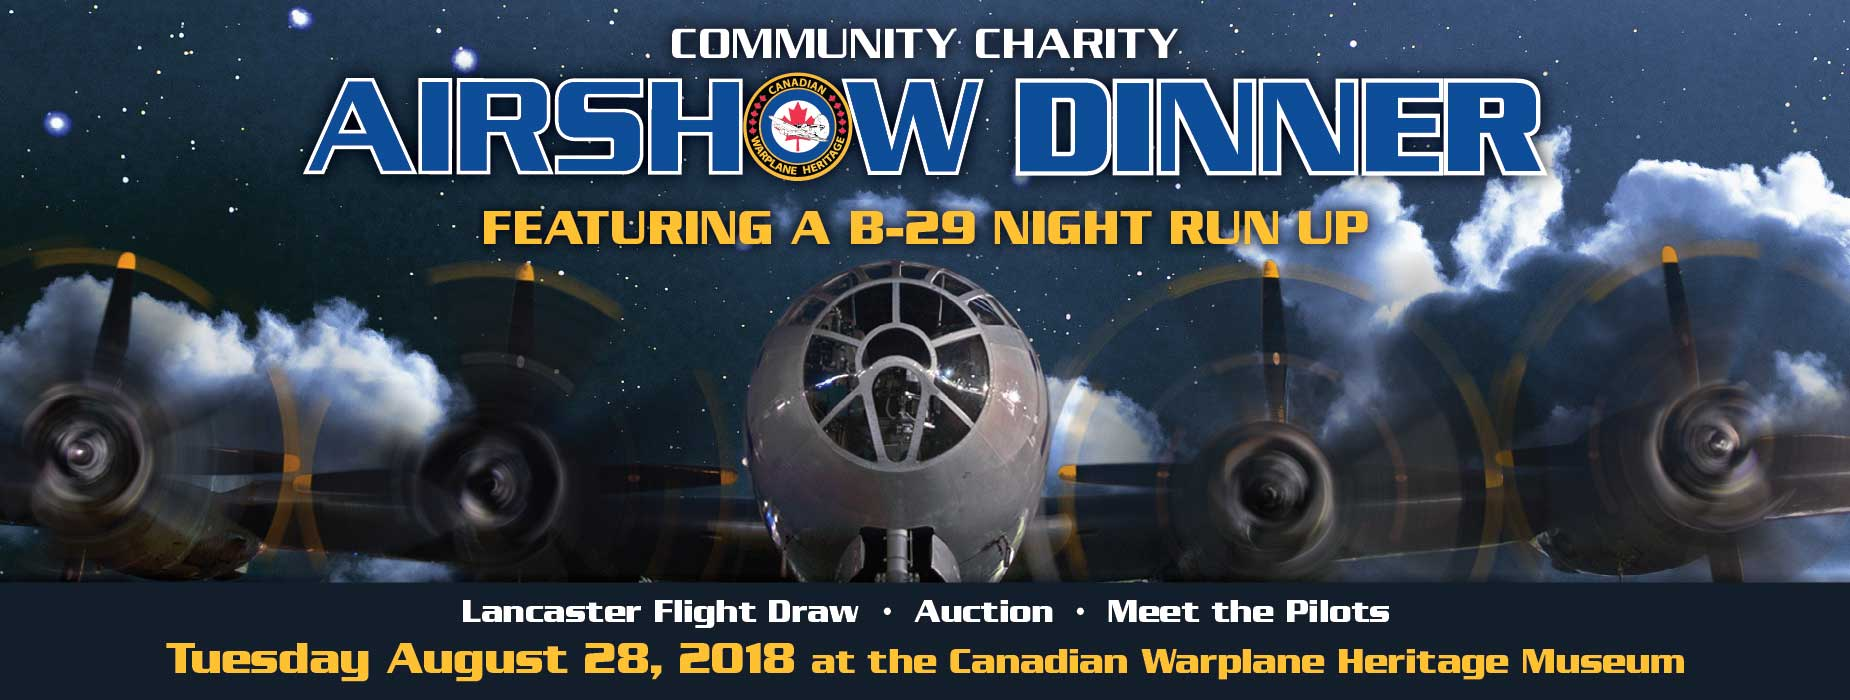 Banner Image for the Airshow Dinner event